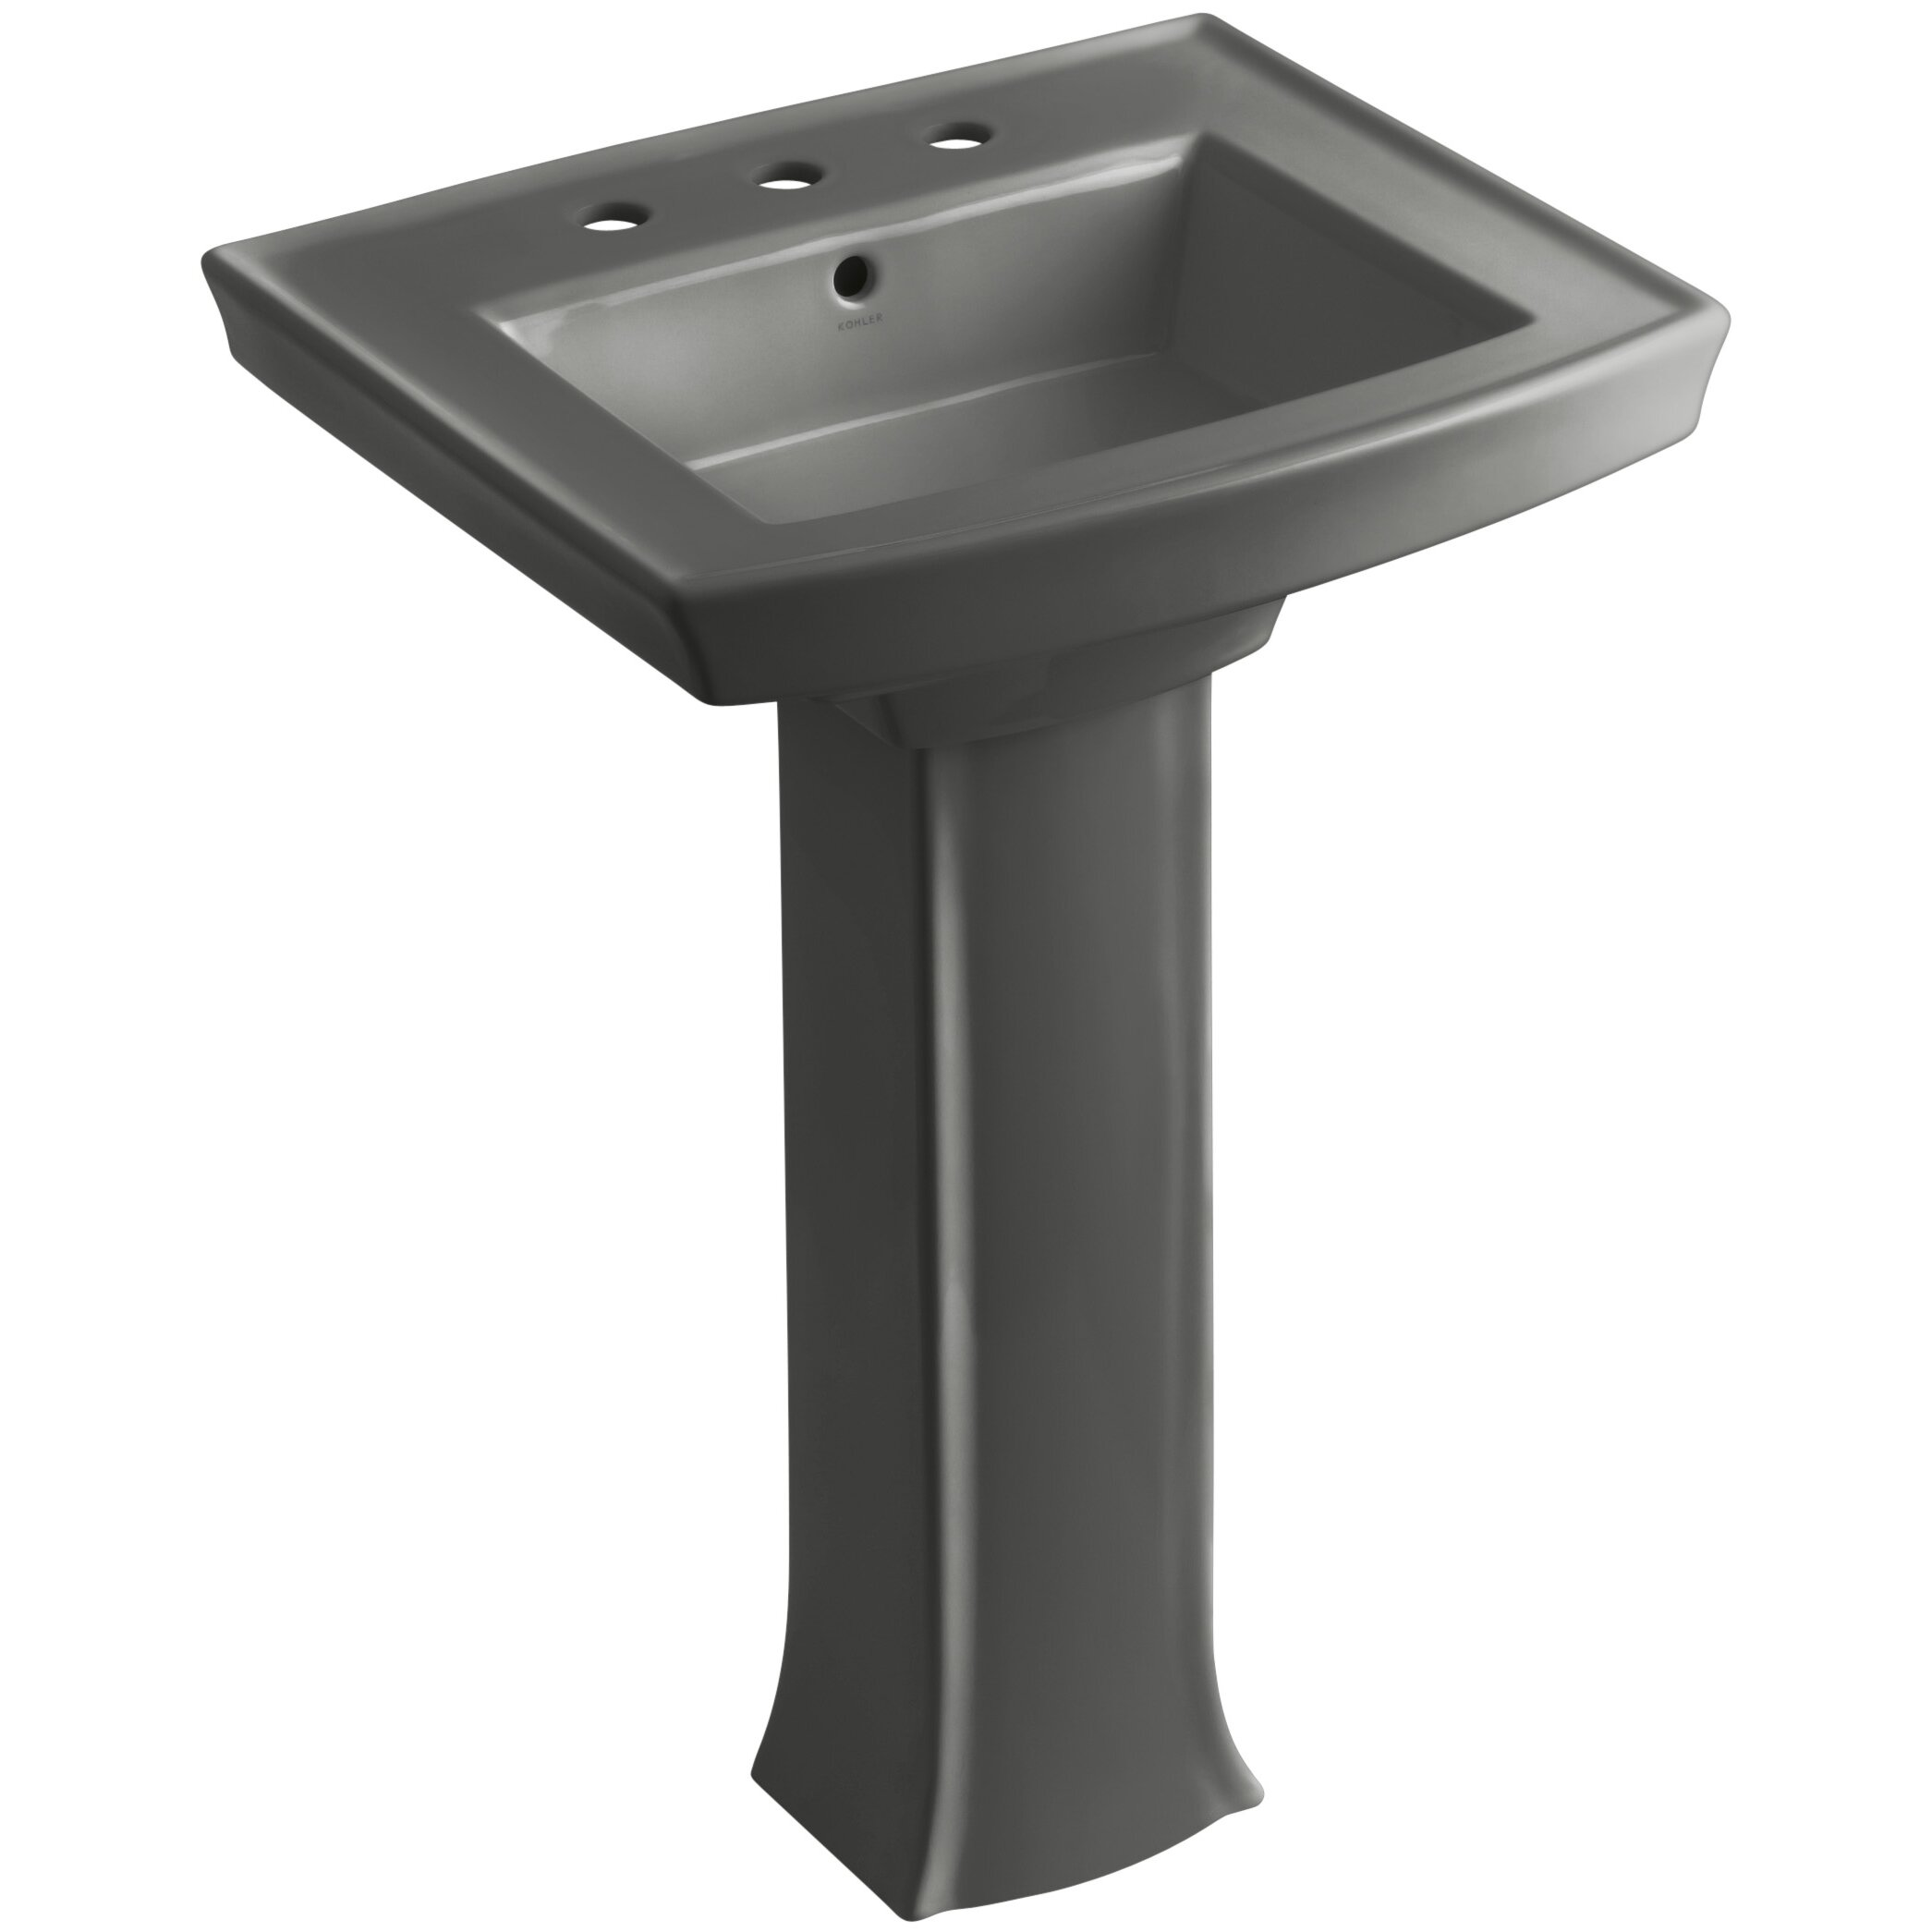 Kohler Pedestal : Kohler Kohler Archer Pedestal Sink & Reviews Wayfair